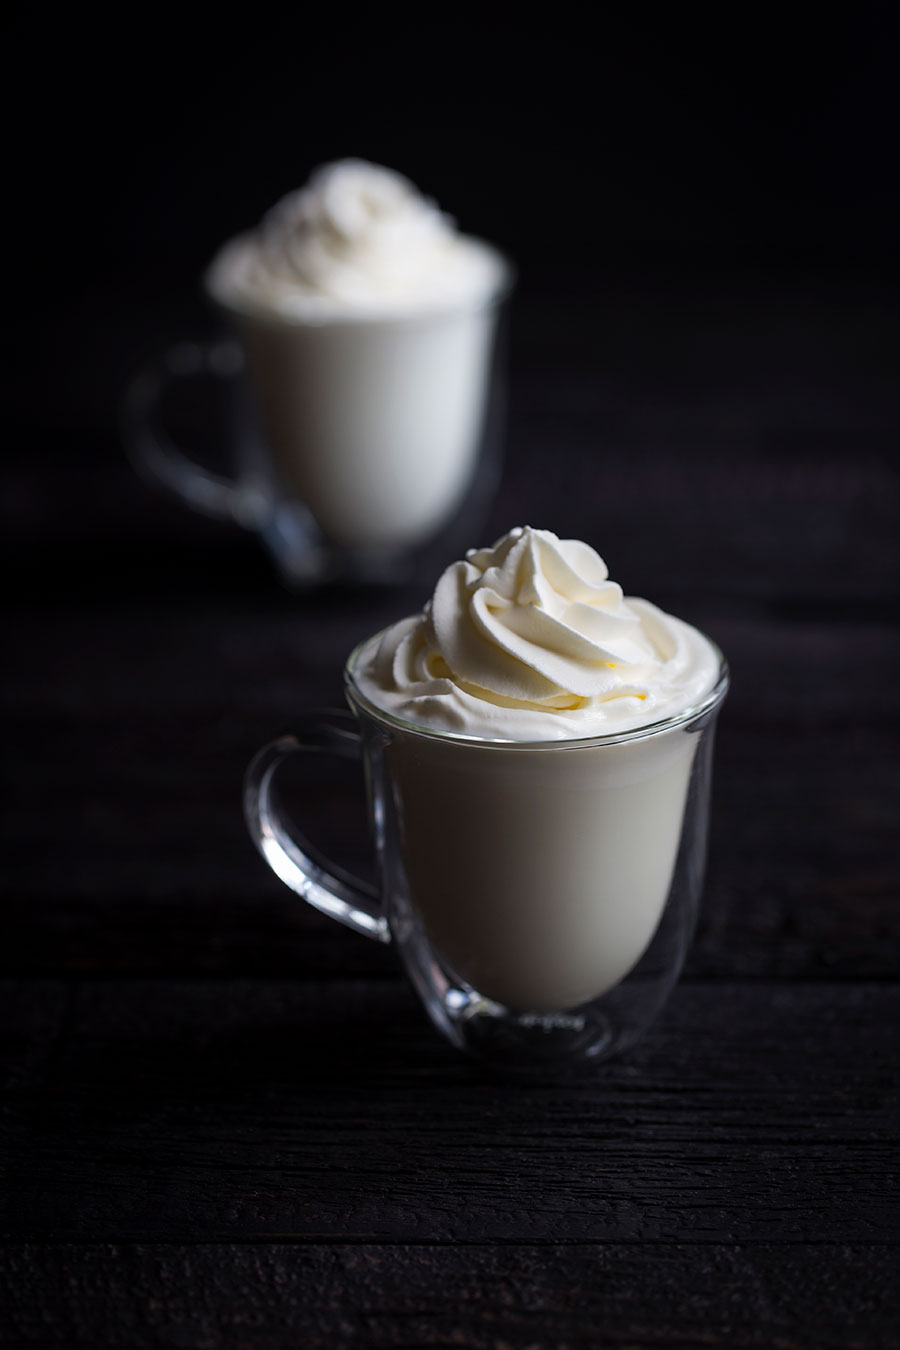 This white hot chocolate comes together in minutes and is absolutely decadent! For an extra treat, try adding a splash of liqueur such as Kahlua, Rumchata, or Baileys!